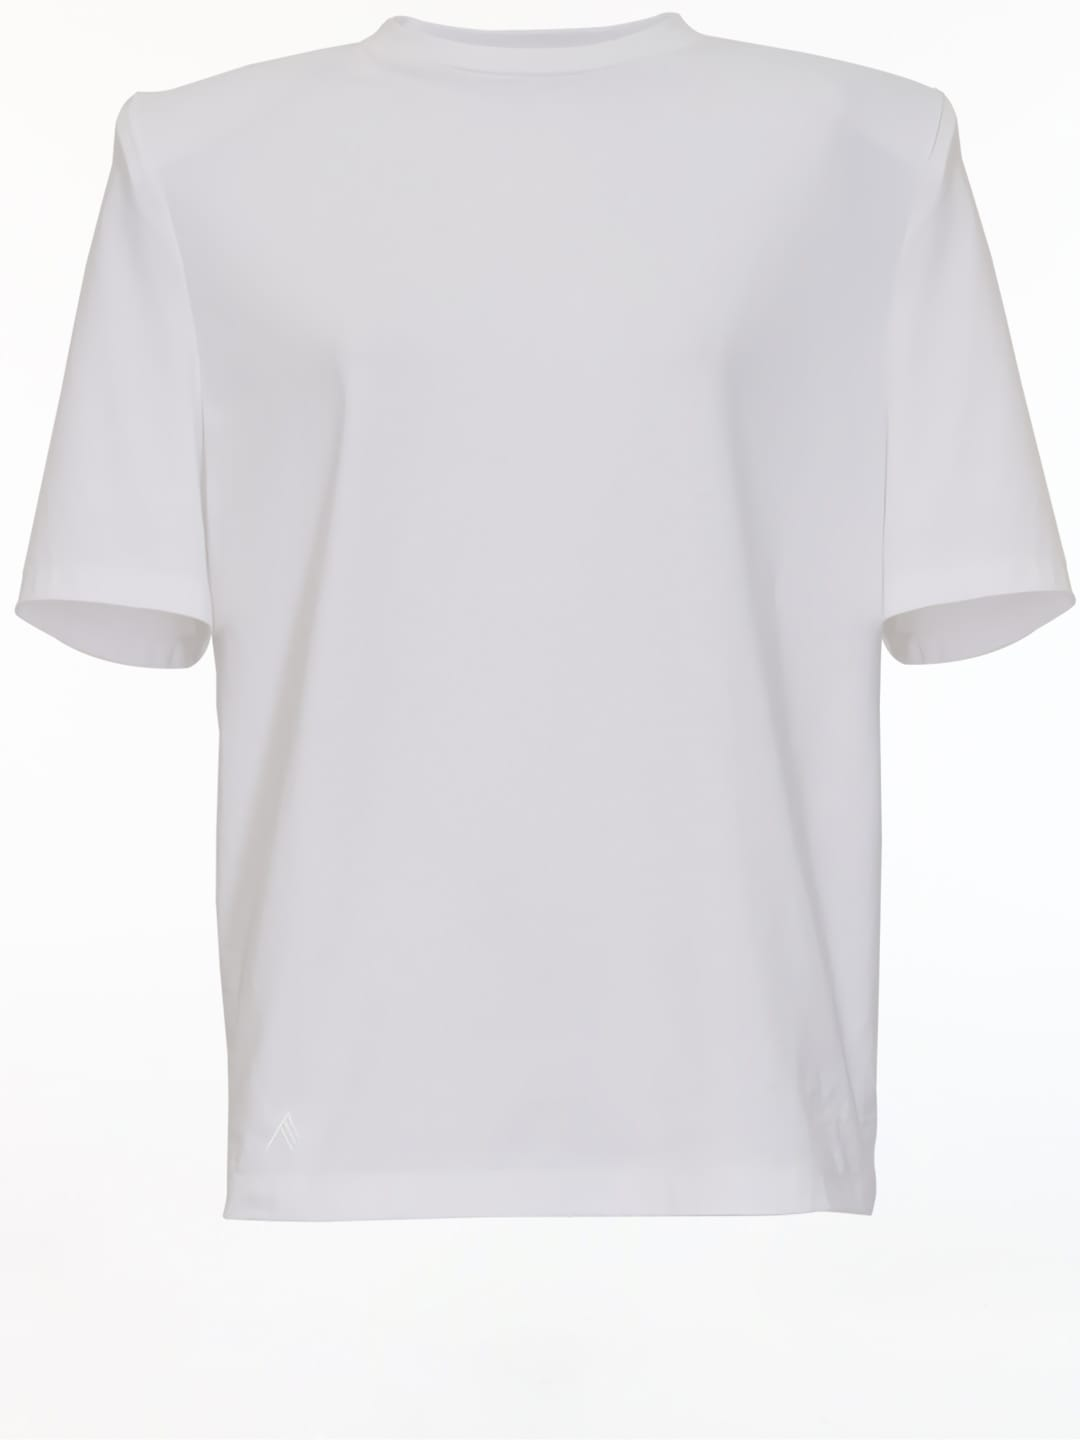 Attico T-shirts BELLA WHITE T-SHIRT